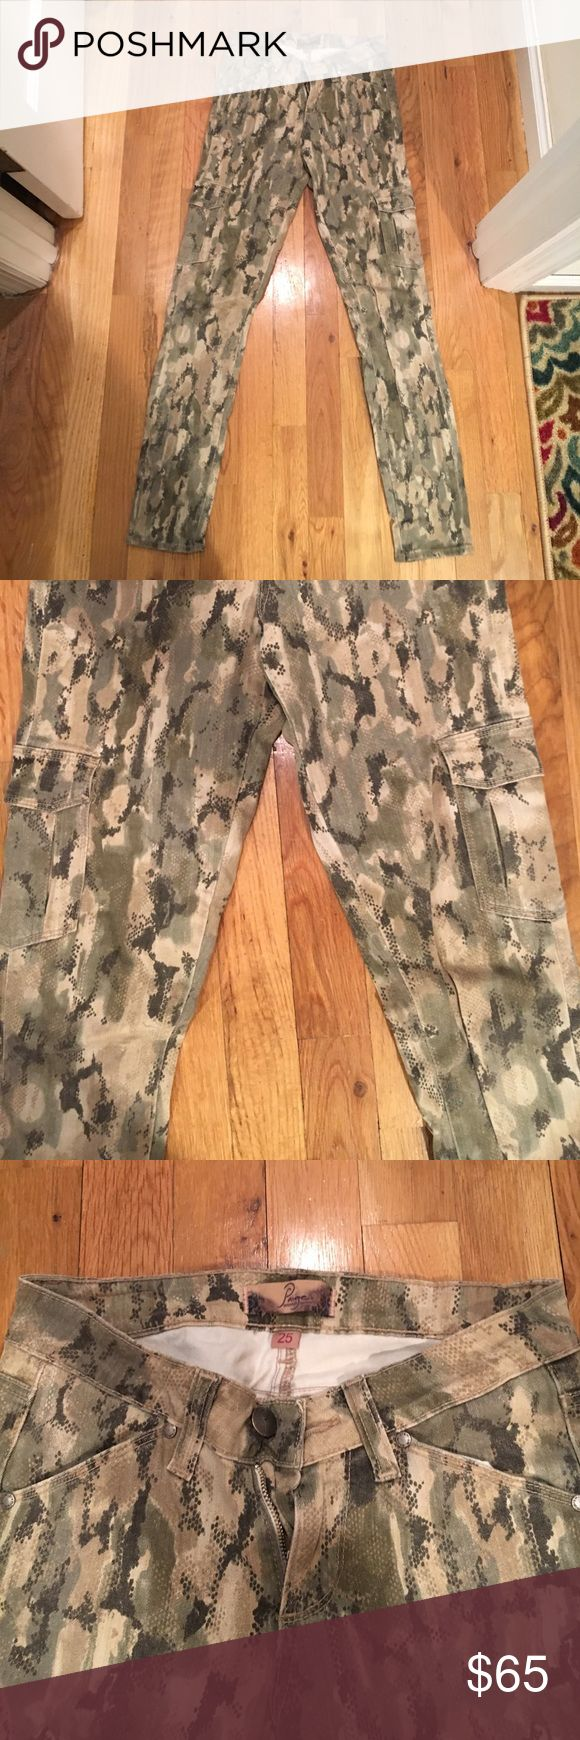 Paige old school camouflage skinny cargo jeans Paige - tightly fitted skinny jeans, camouflage pattern. Cargo pockets on sides above knees and regular pockets up by waist Paige Jeans Pants Skinny